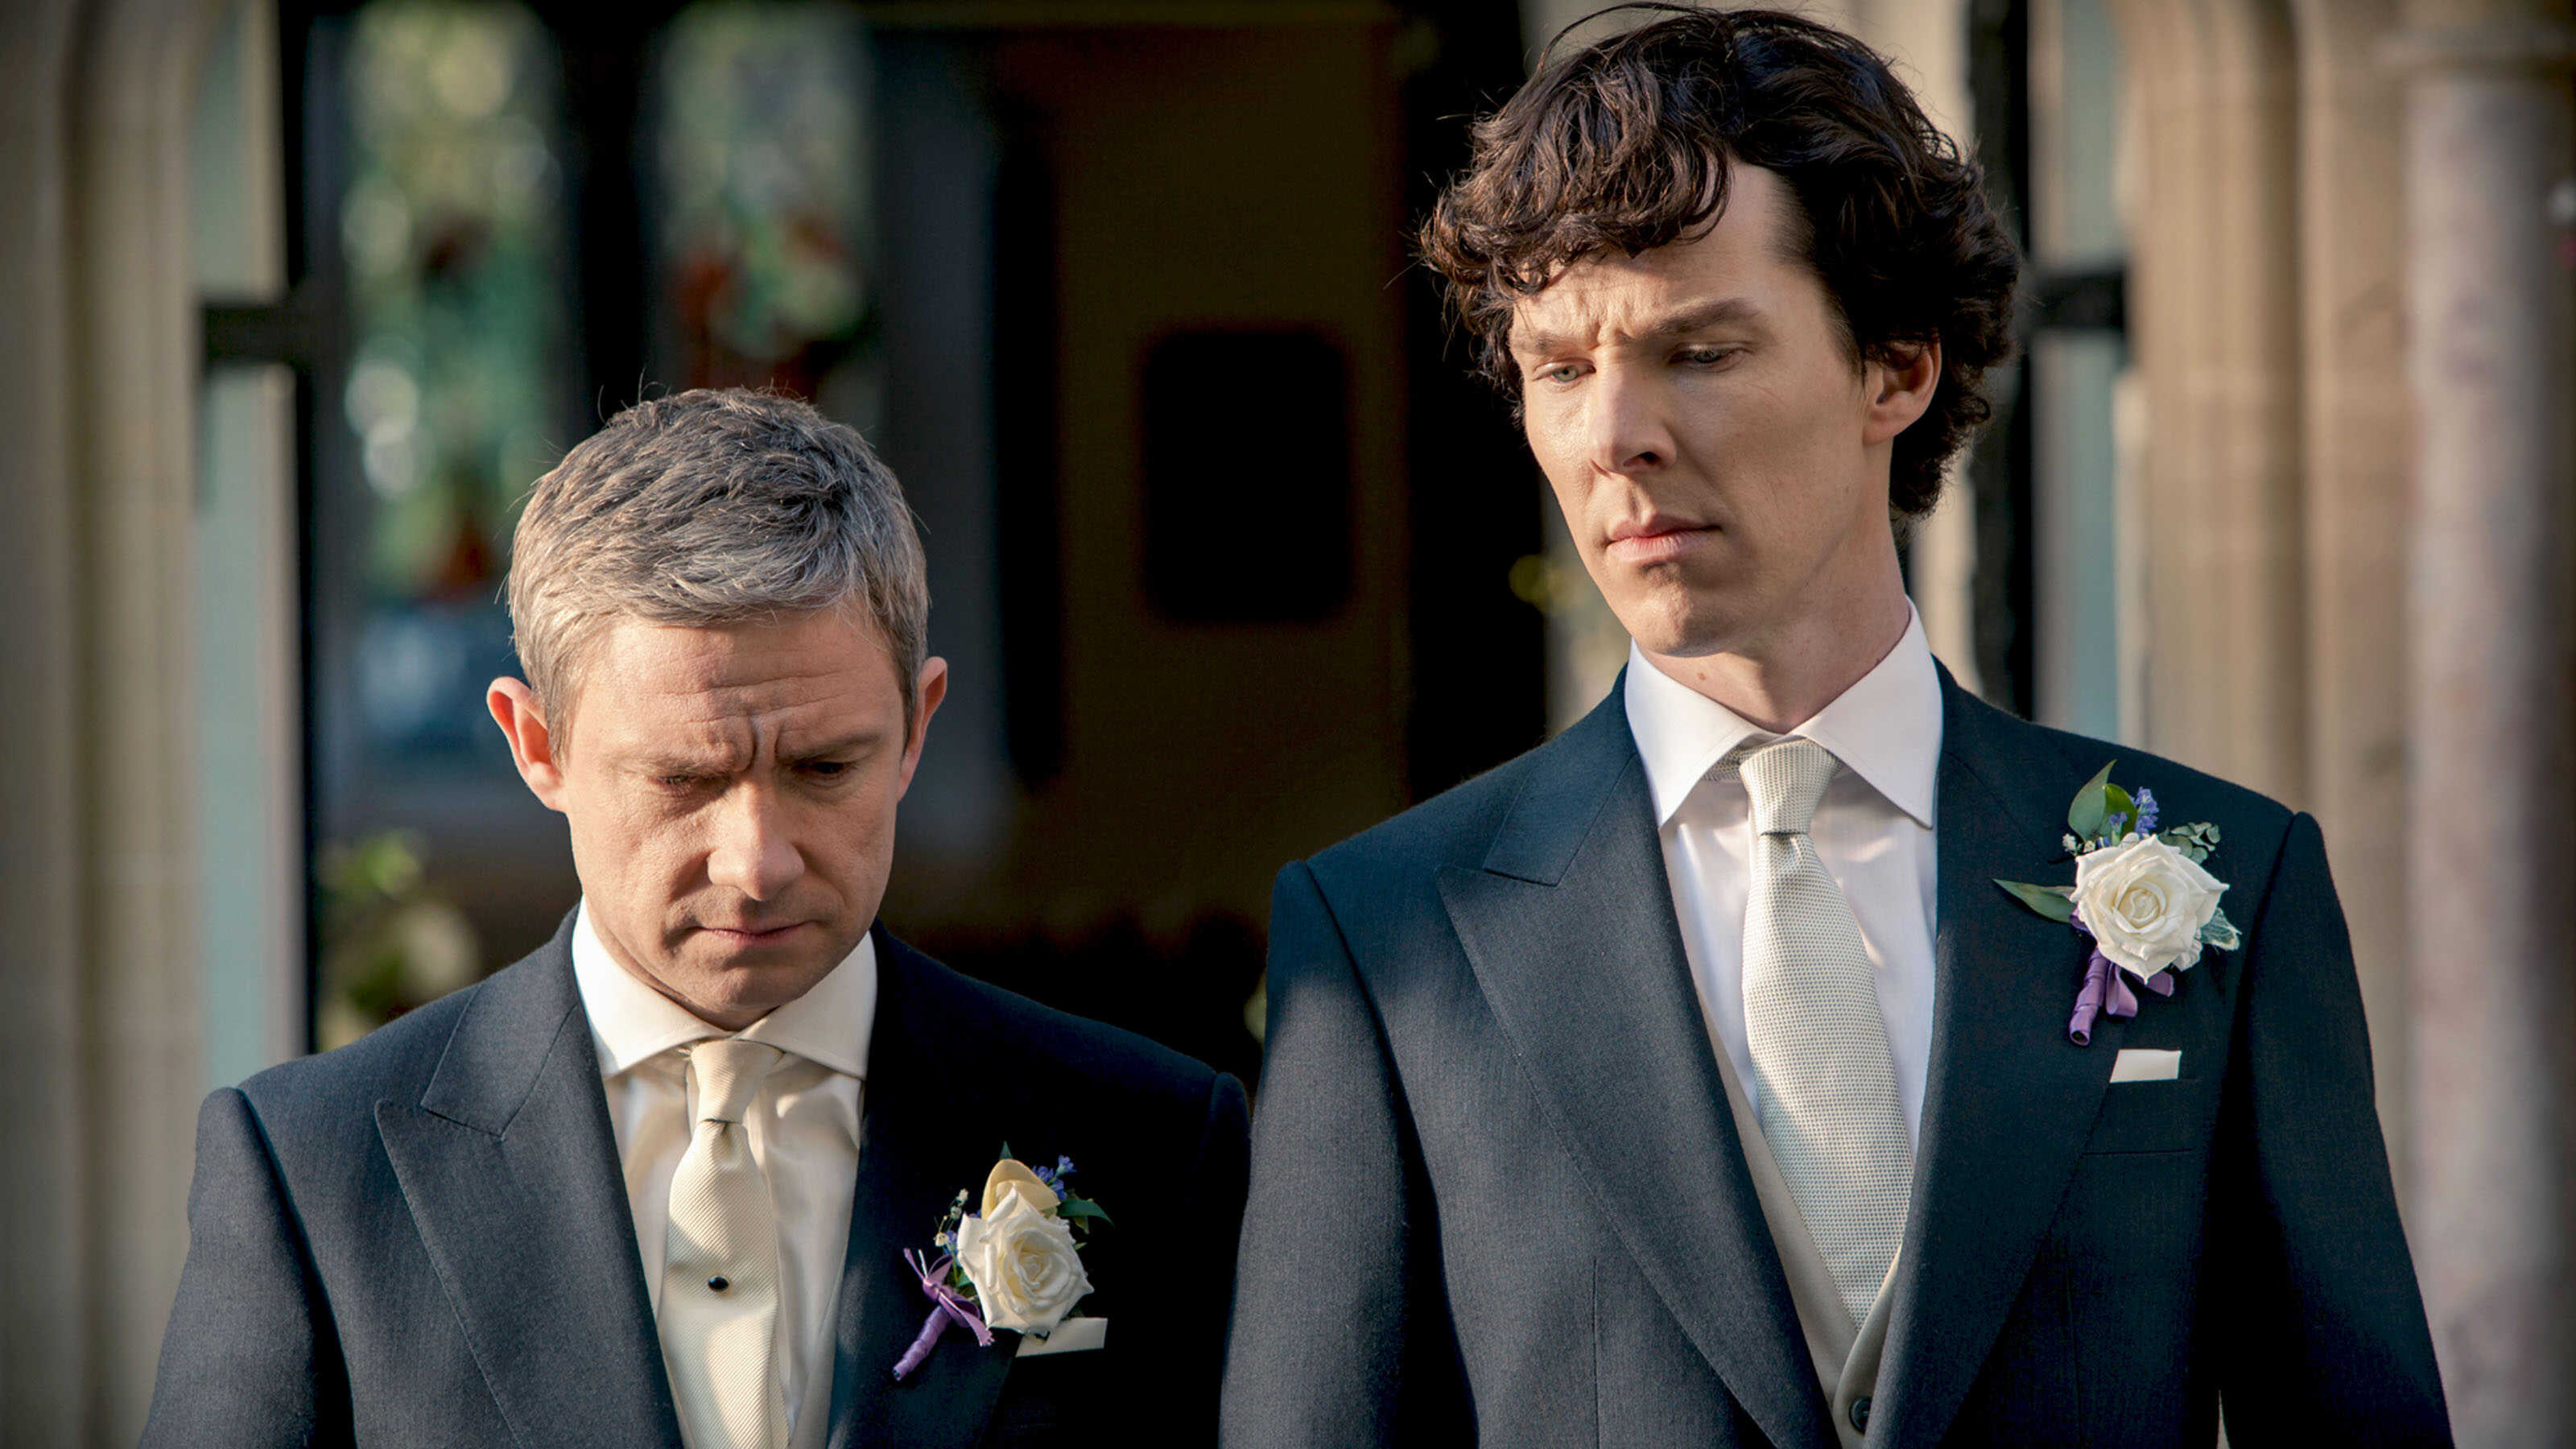 sherlock season 3 episode 1 download 300mb